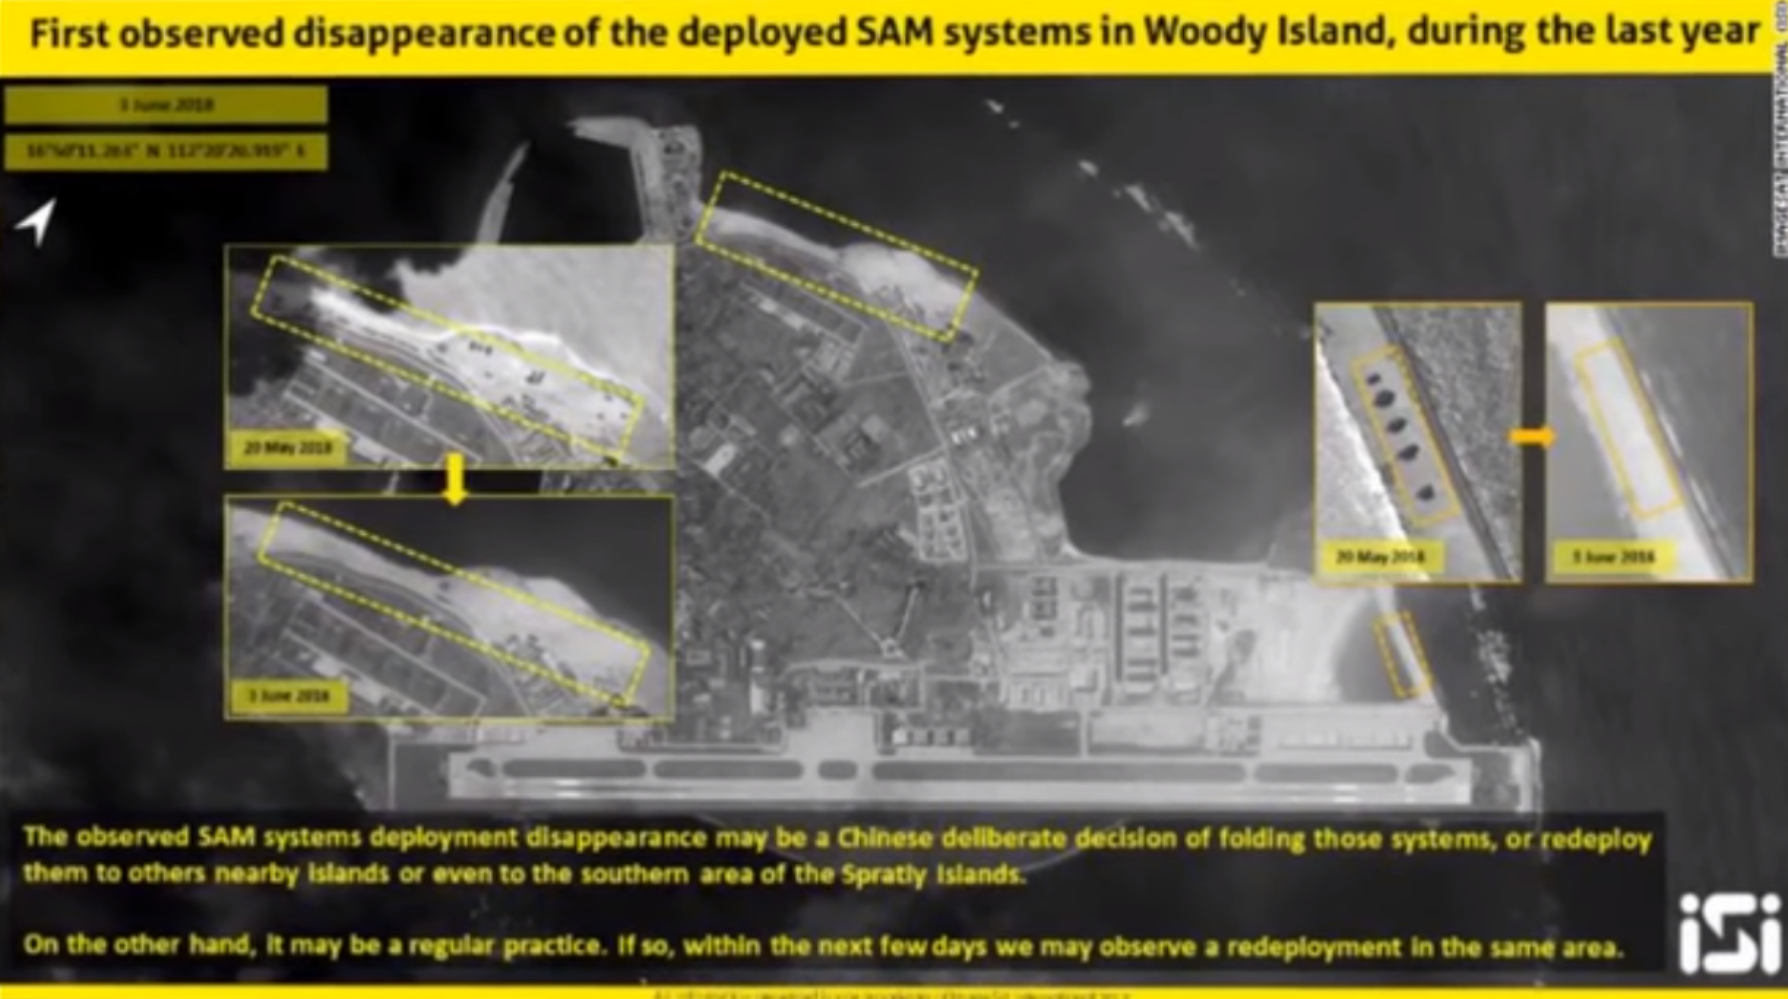 Photos taken by ImageSat International show disappearance of China's missile systems on Woody Island.